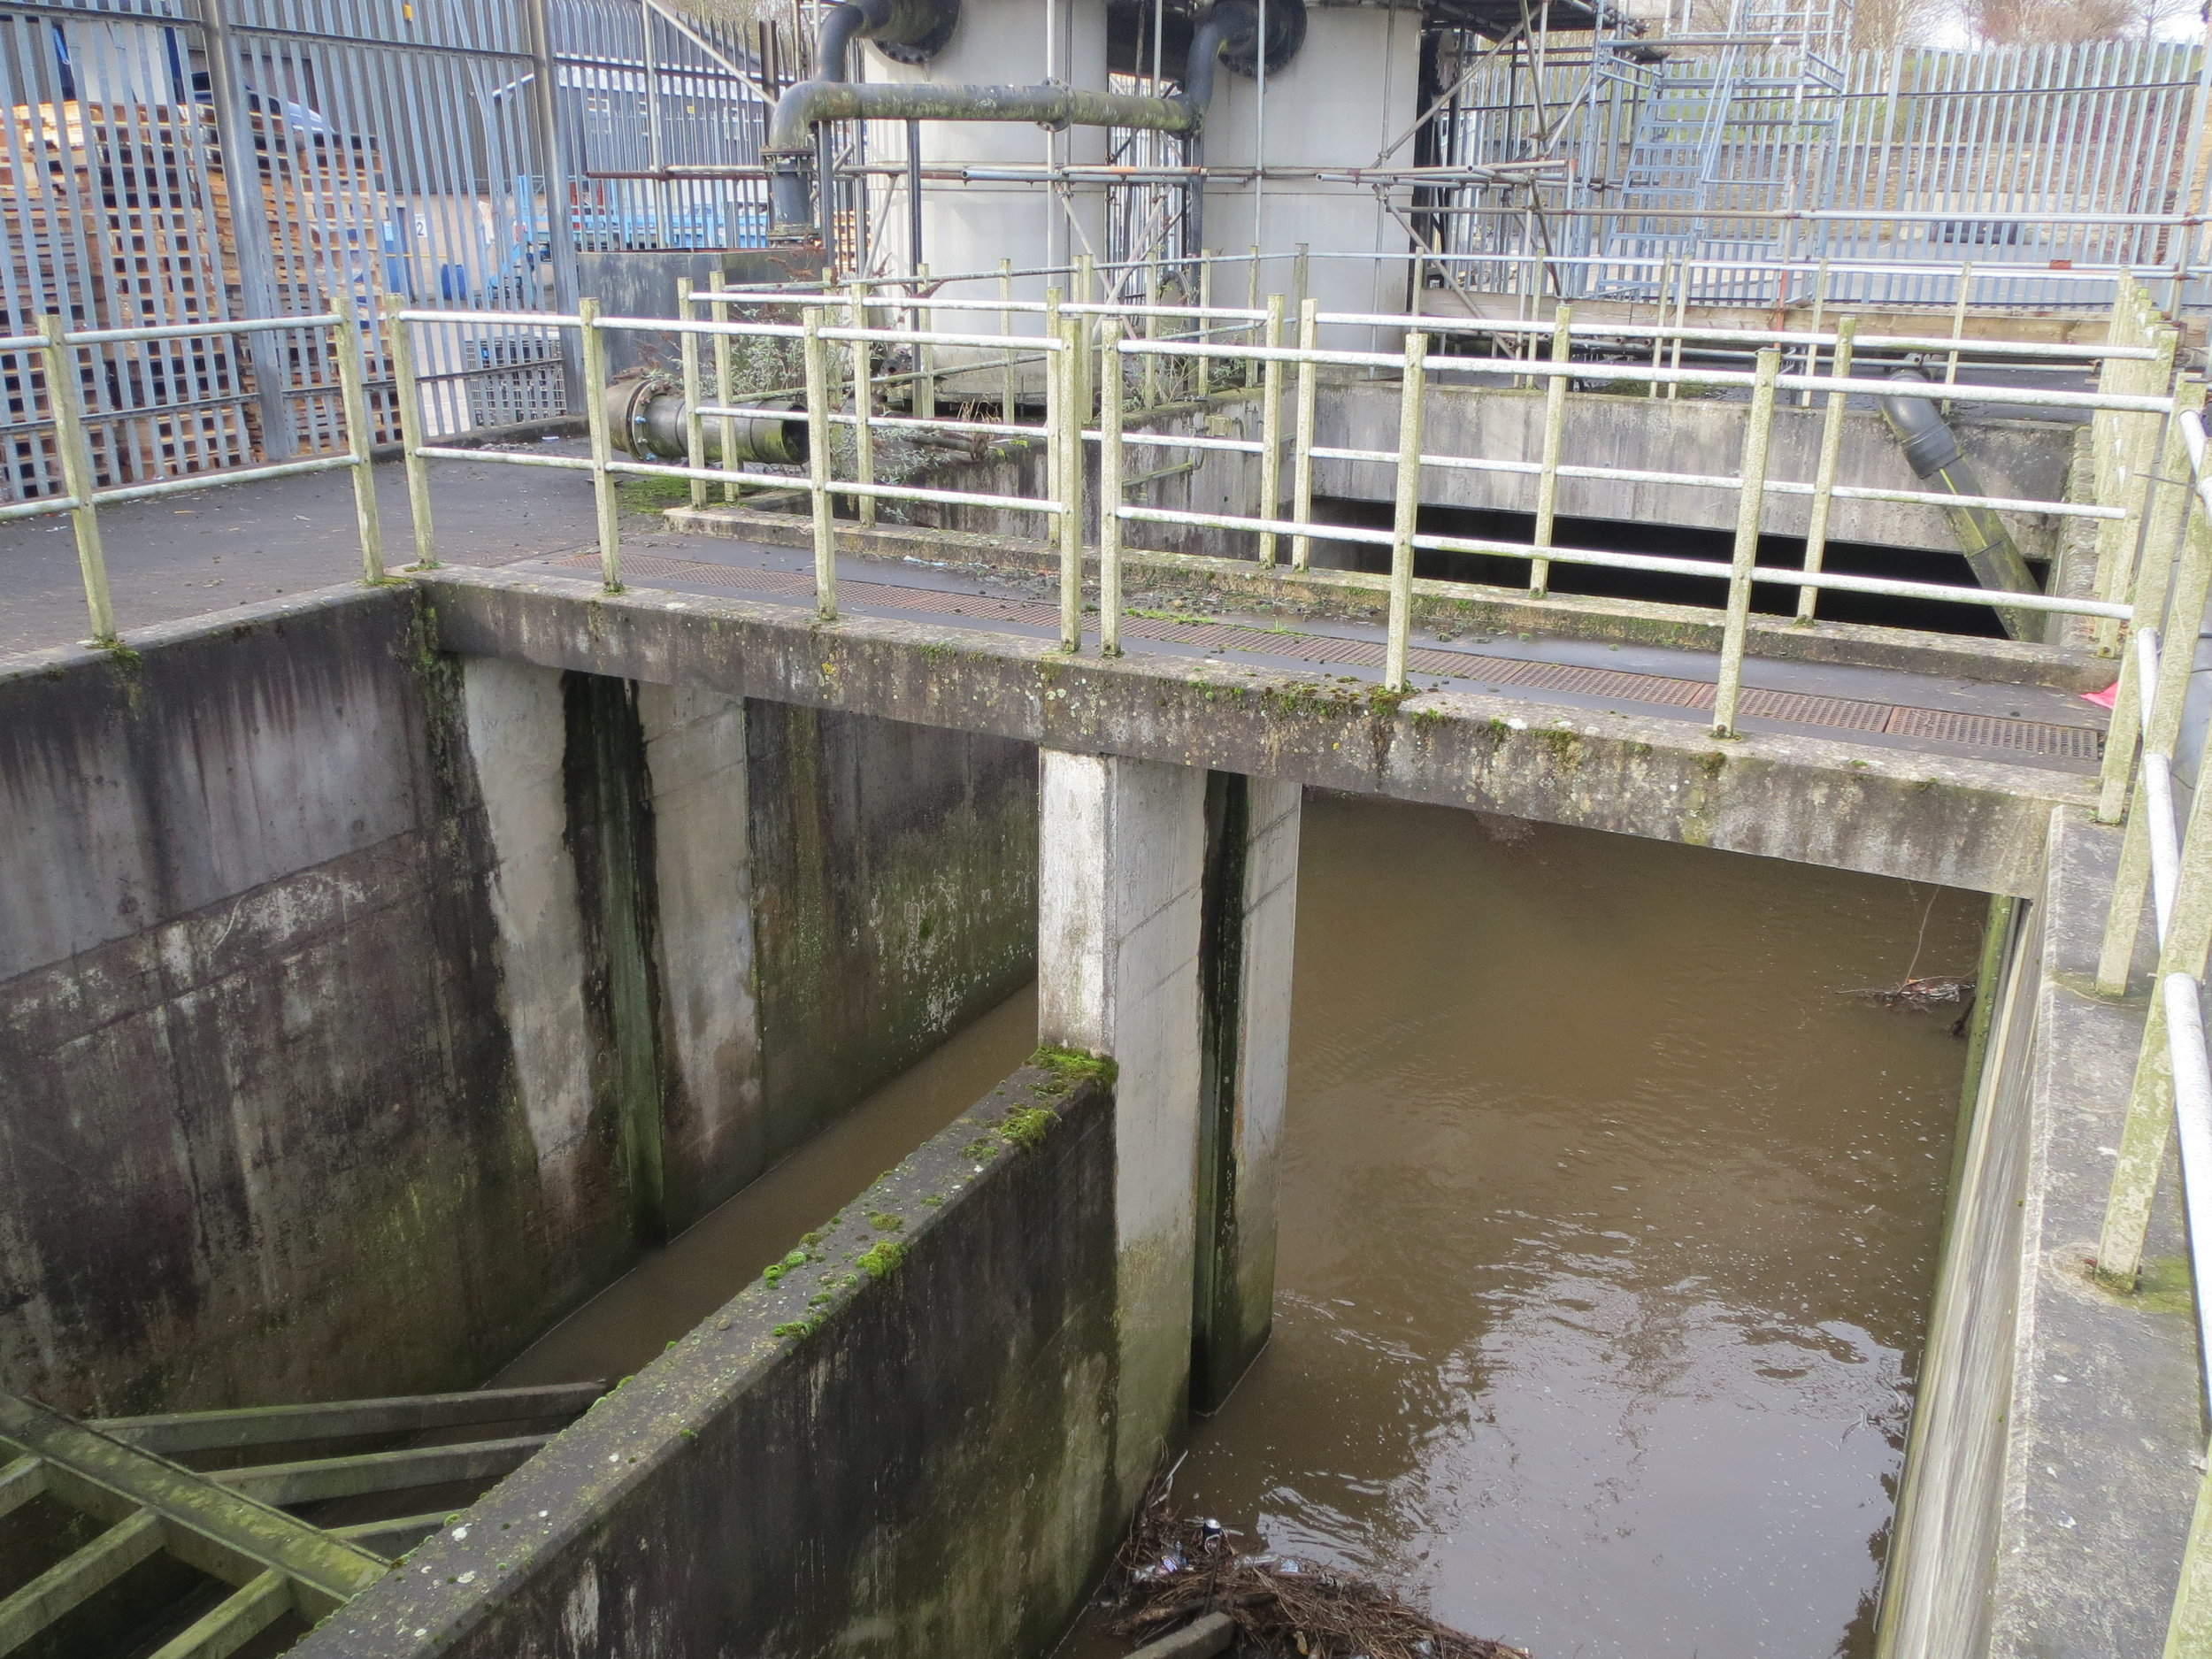 Bradford Beck Flood Alleviation Scheme